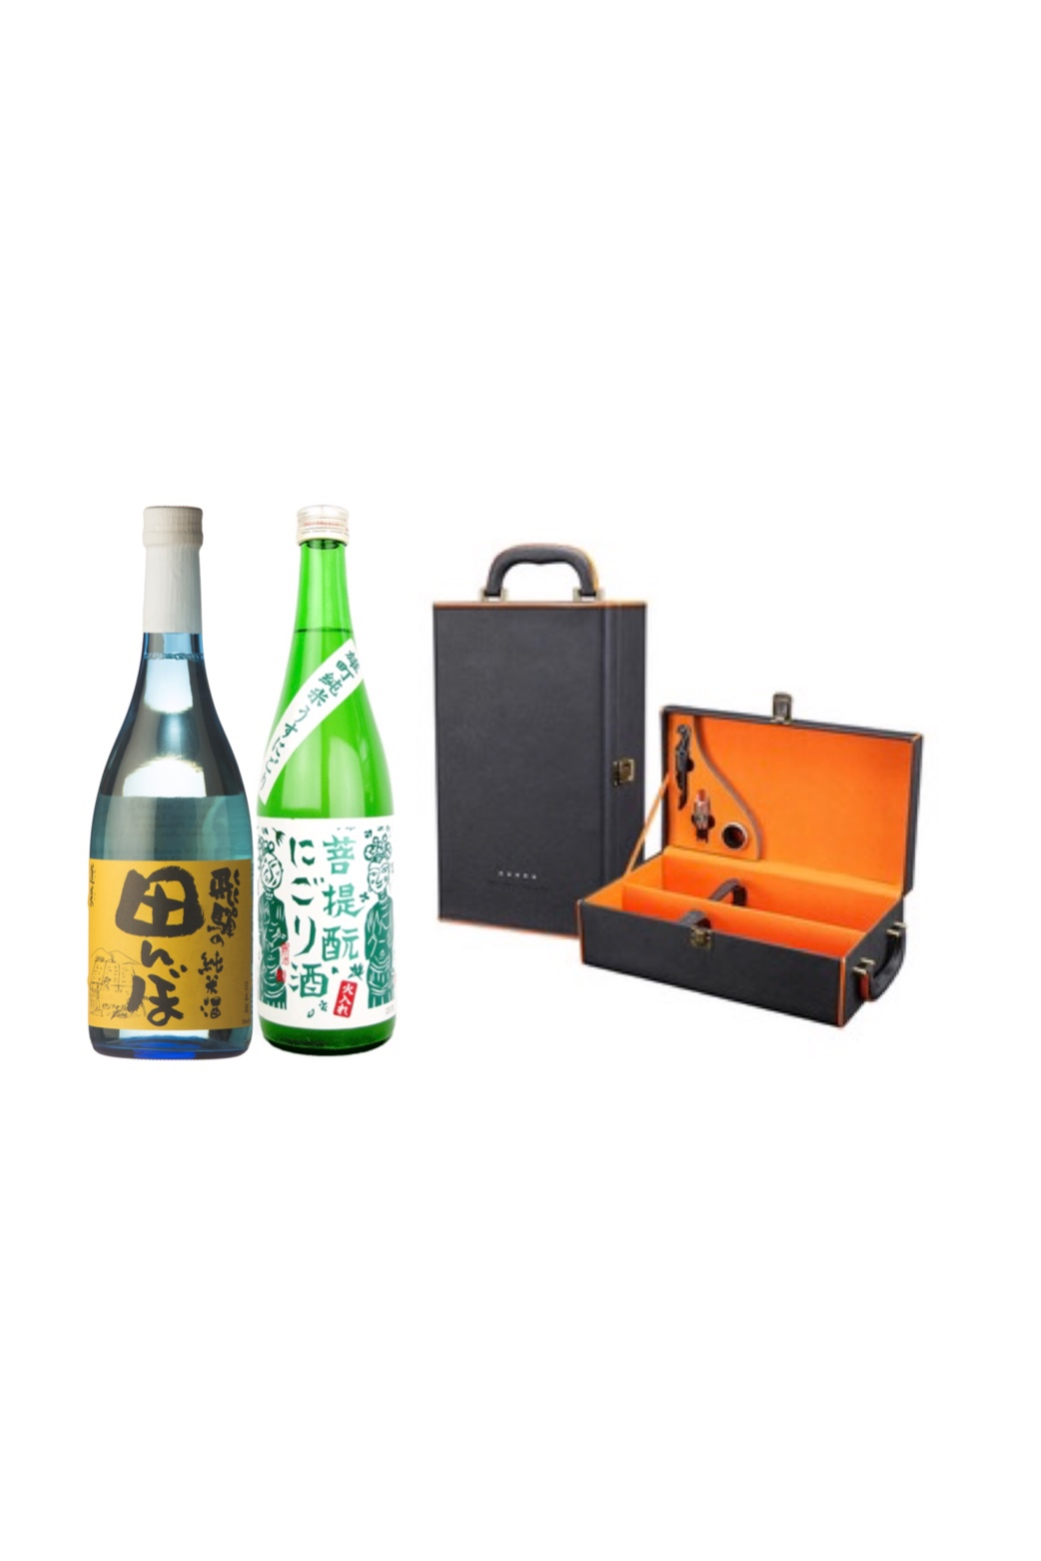 1 Month Sake Discovery Wine Gift Subscription